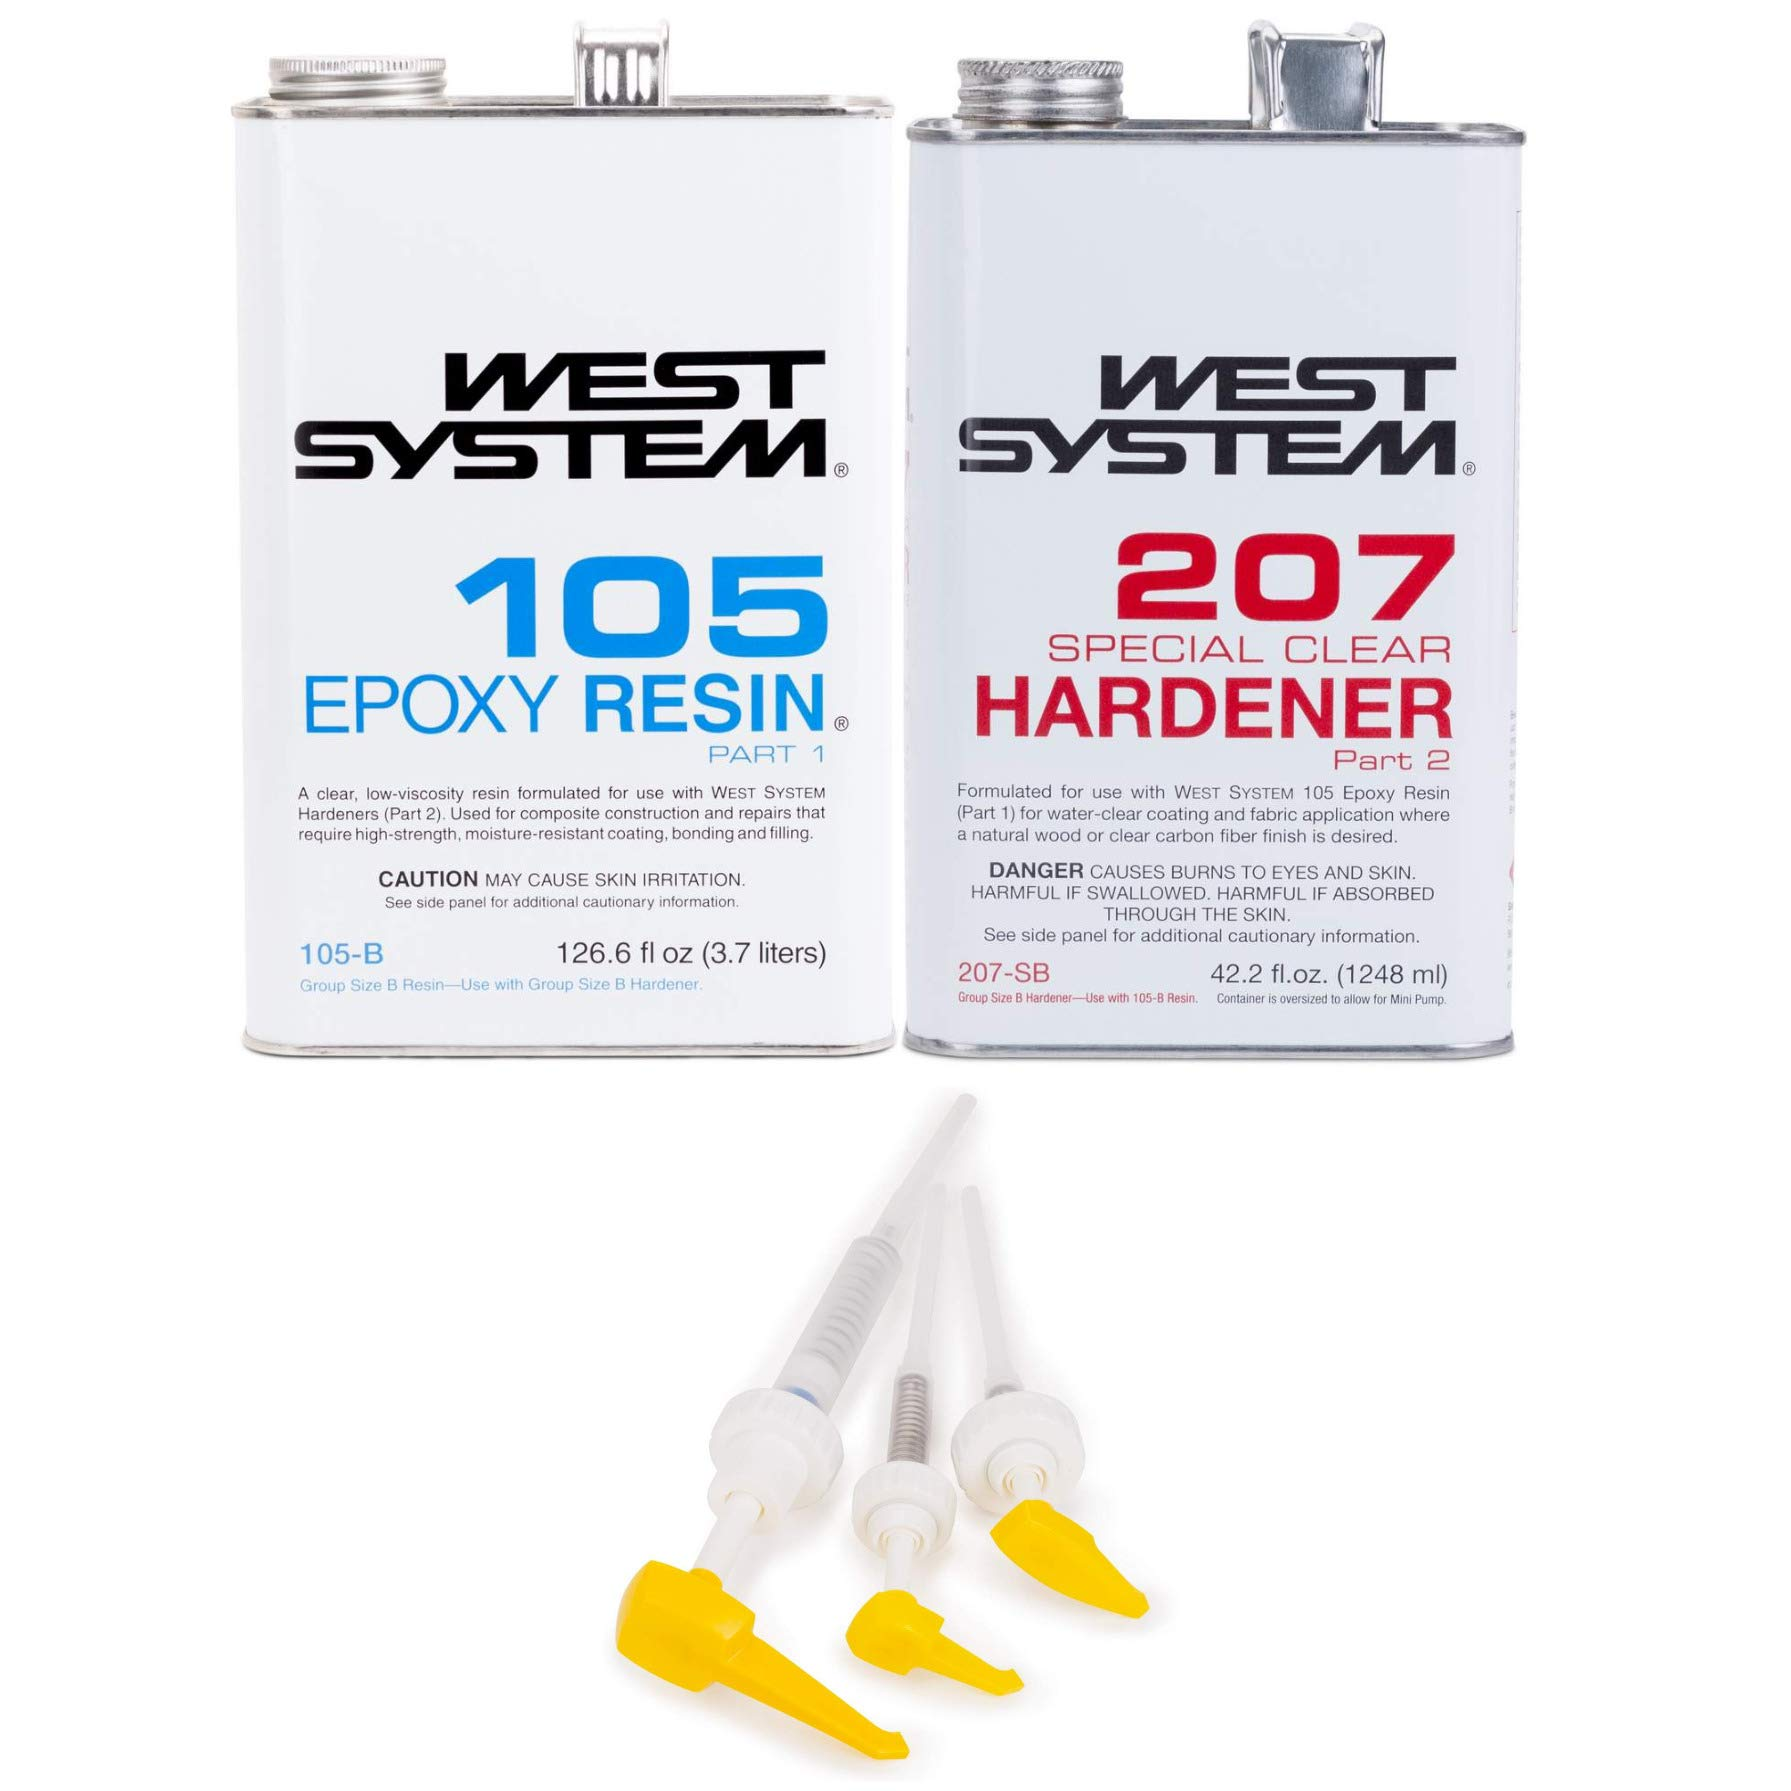 West System 105-B Epoxy Resin (.98 gal) With 207-B Special Clear Epoxy Hardener (.33 gal) and Epoxy Metering Pump Set by WEST SYSTEM